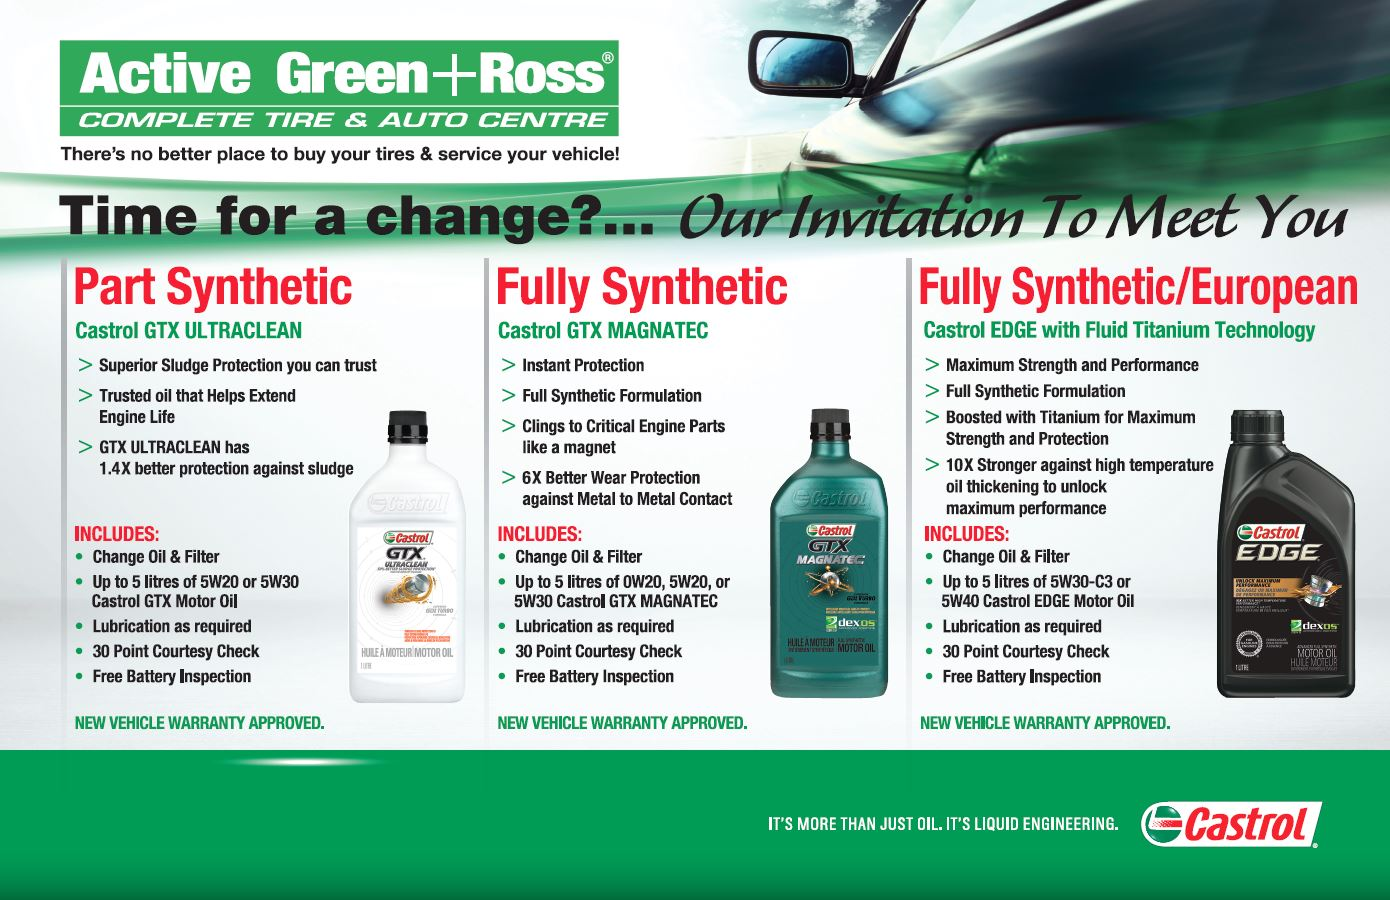 EcoPower & Castrol Oil Change - Active Green + Ross Tire & Auto Centre